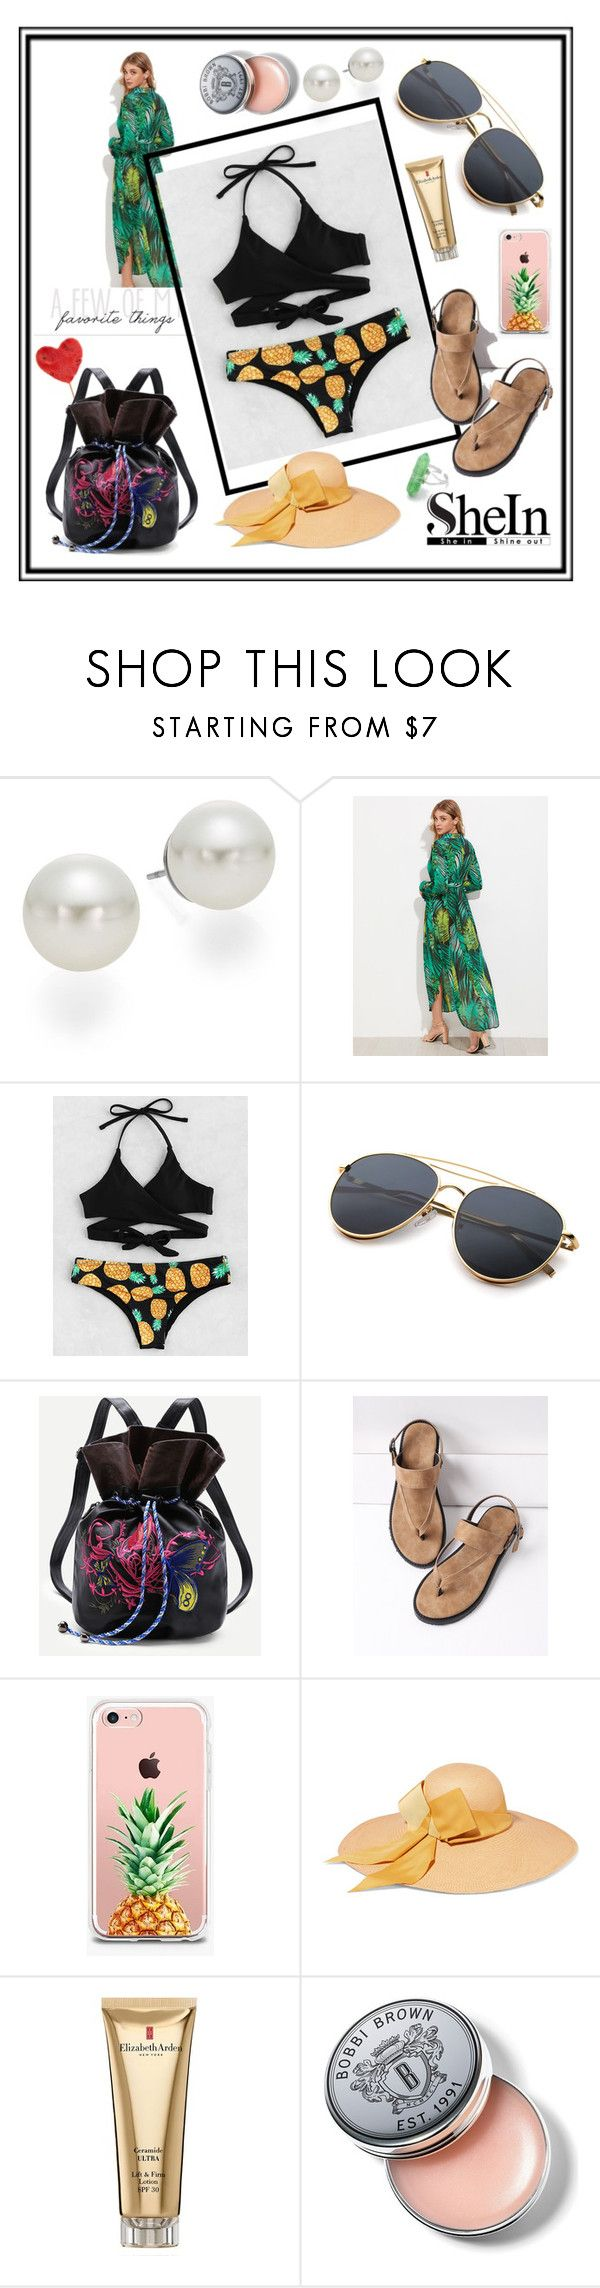 """Pineapple Wrap Bikini Set"" by edin-levic ❤ liked on Polyvore featuring AK Anne Klein, The Casery, Sensi Studio, Elizabeth Arden and Bobbi Brown Cosmetics"